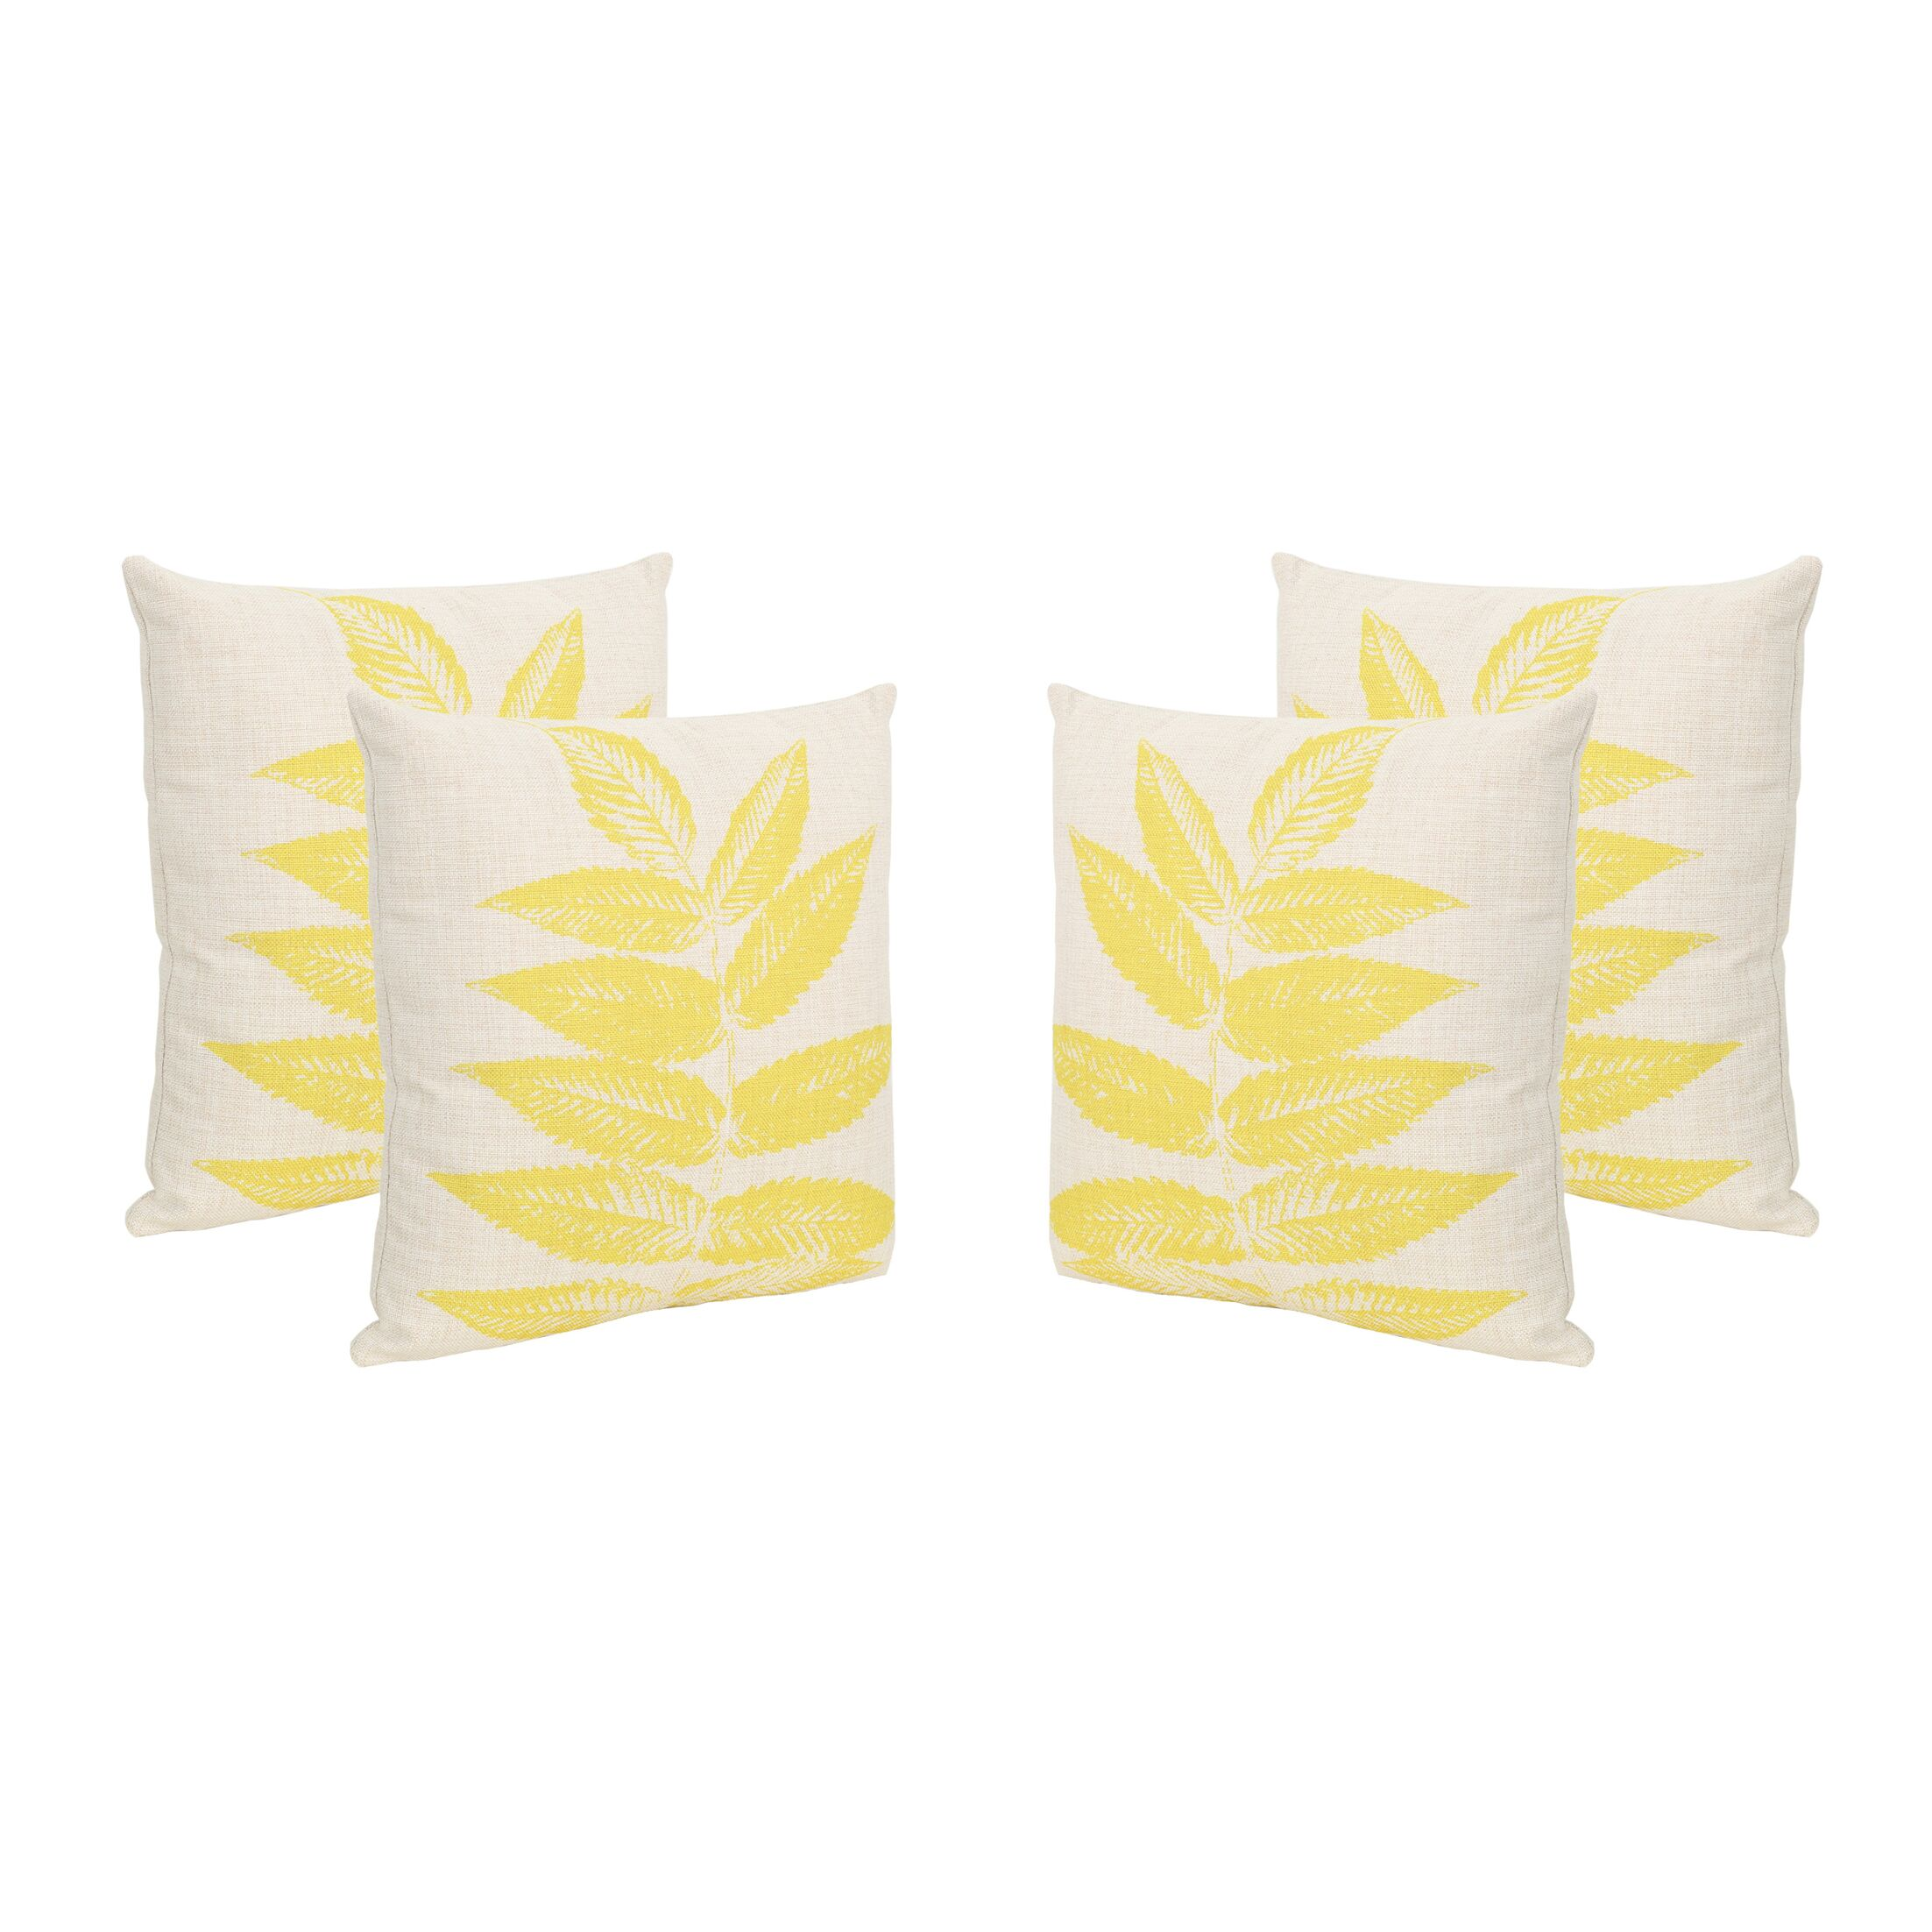 Woodburn Leaves Outdoor Throw Pillow